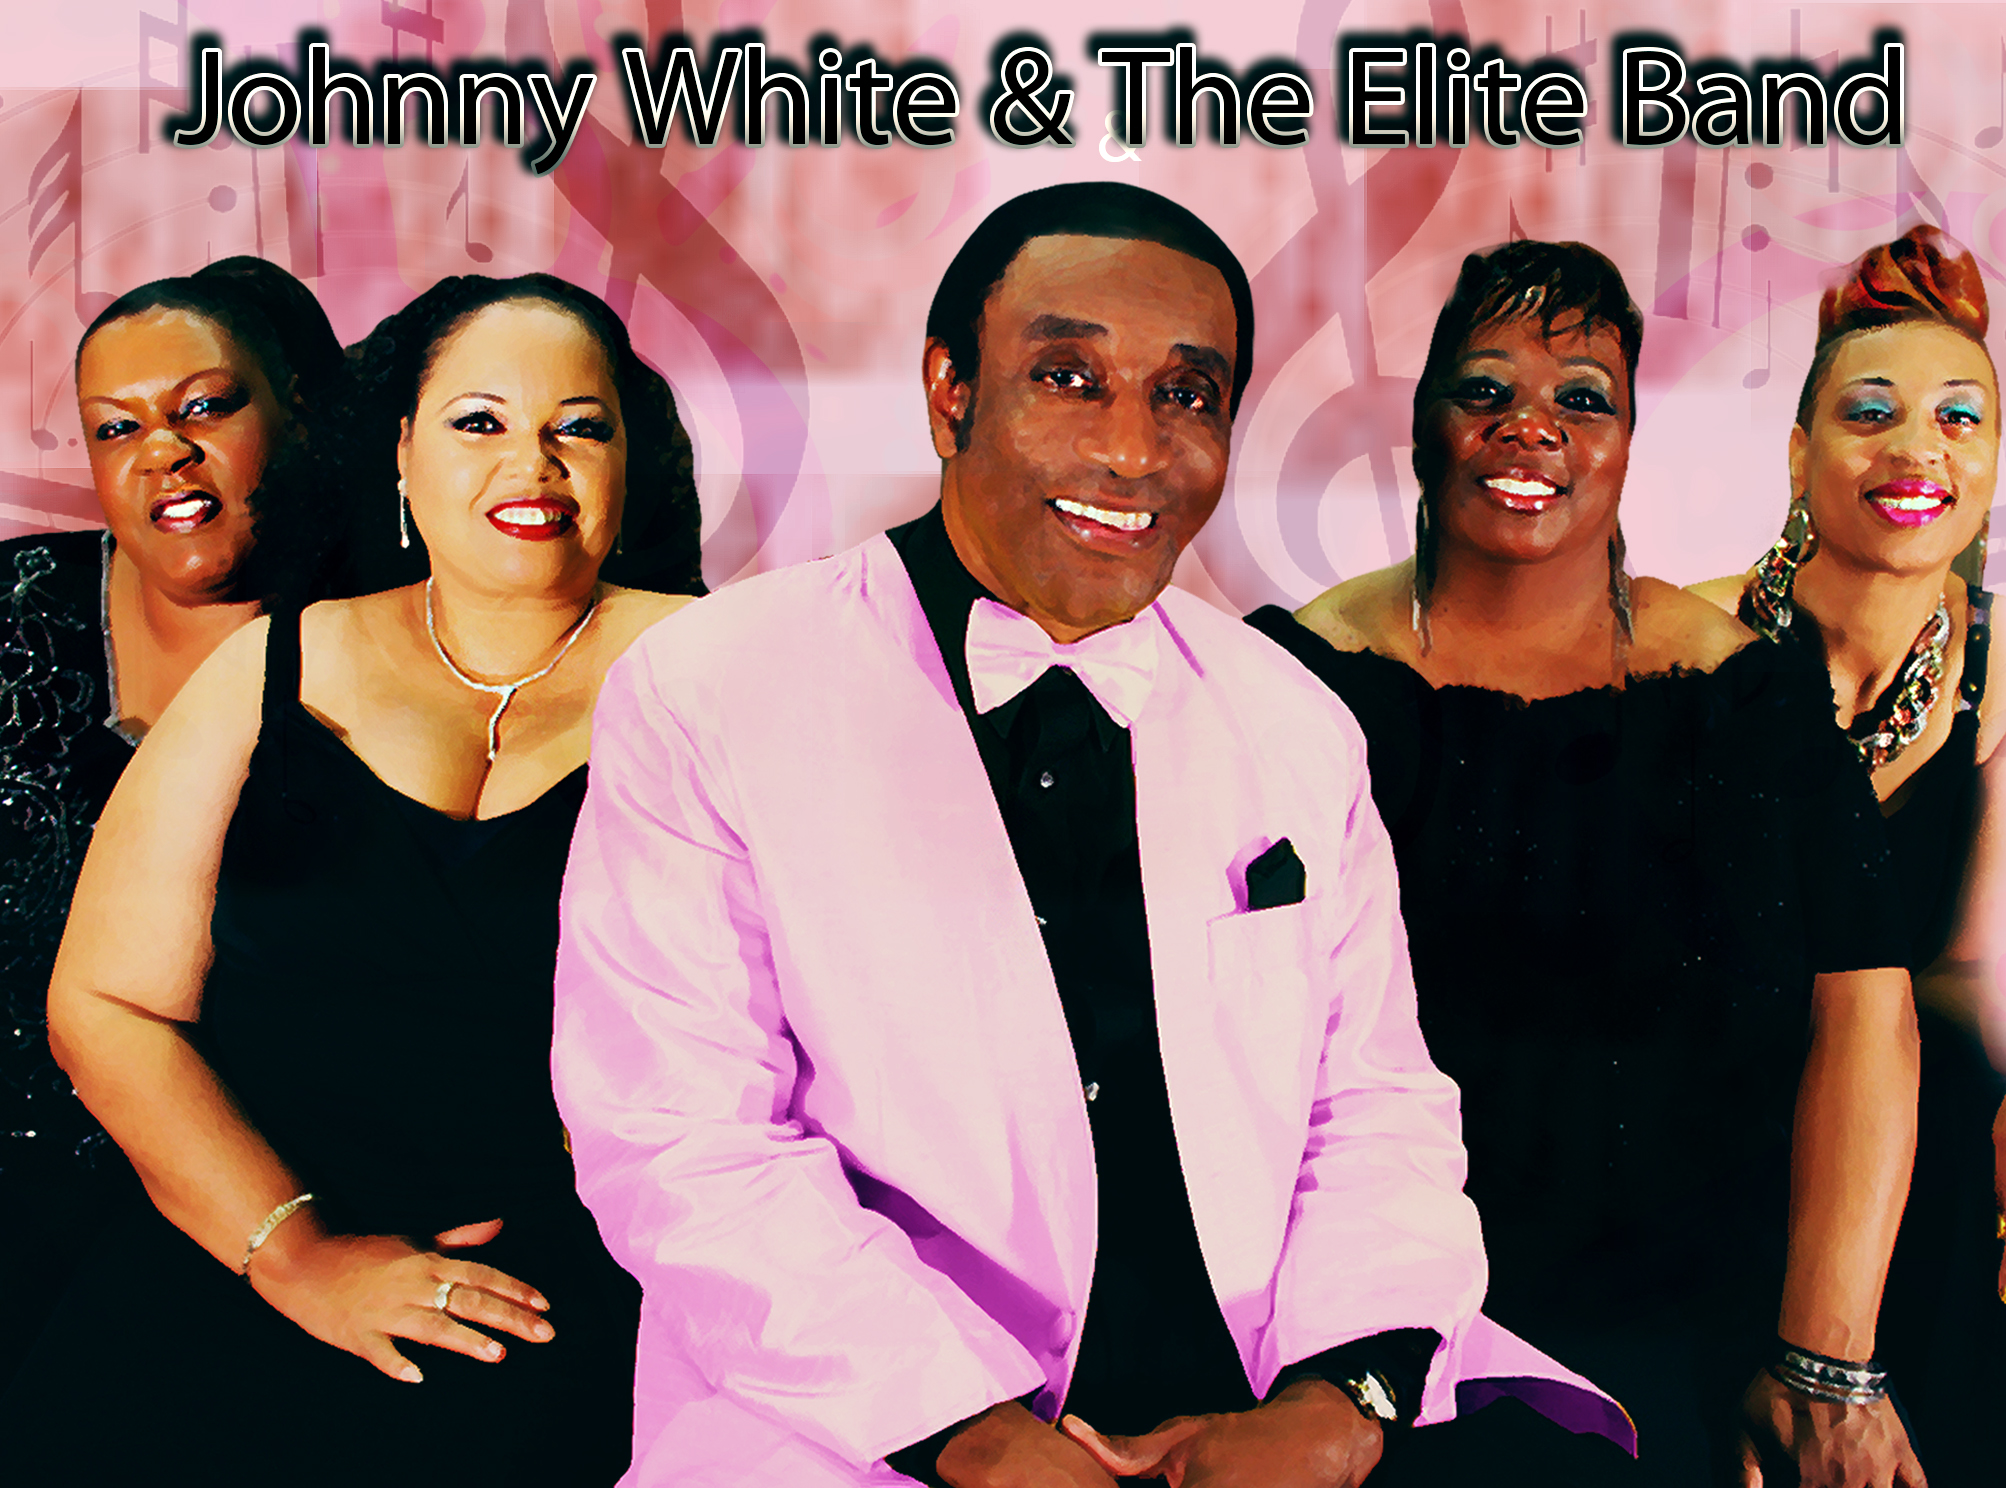 Johnny White & The Elite